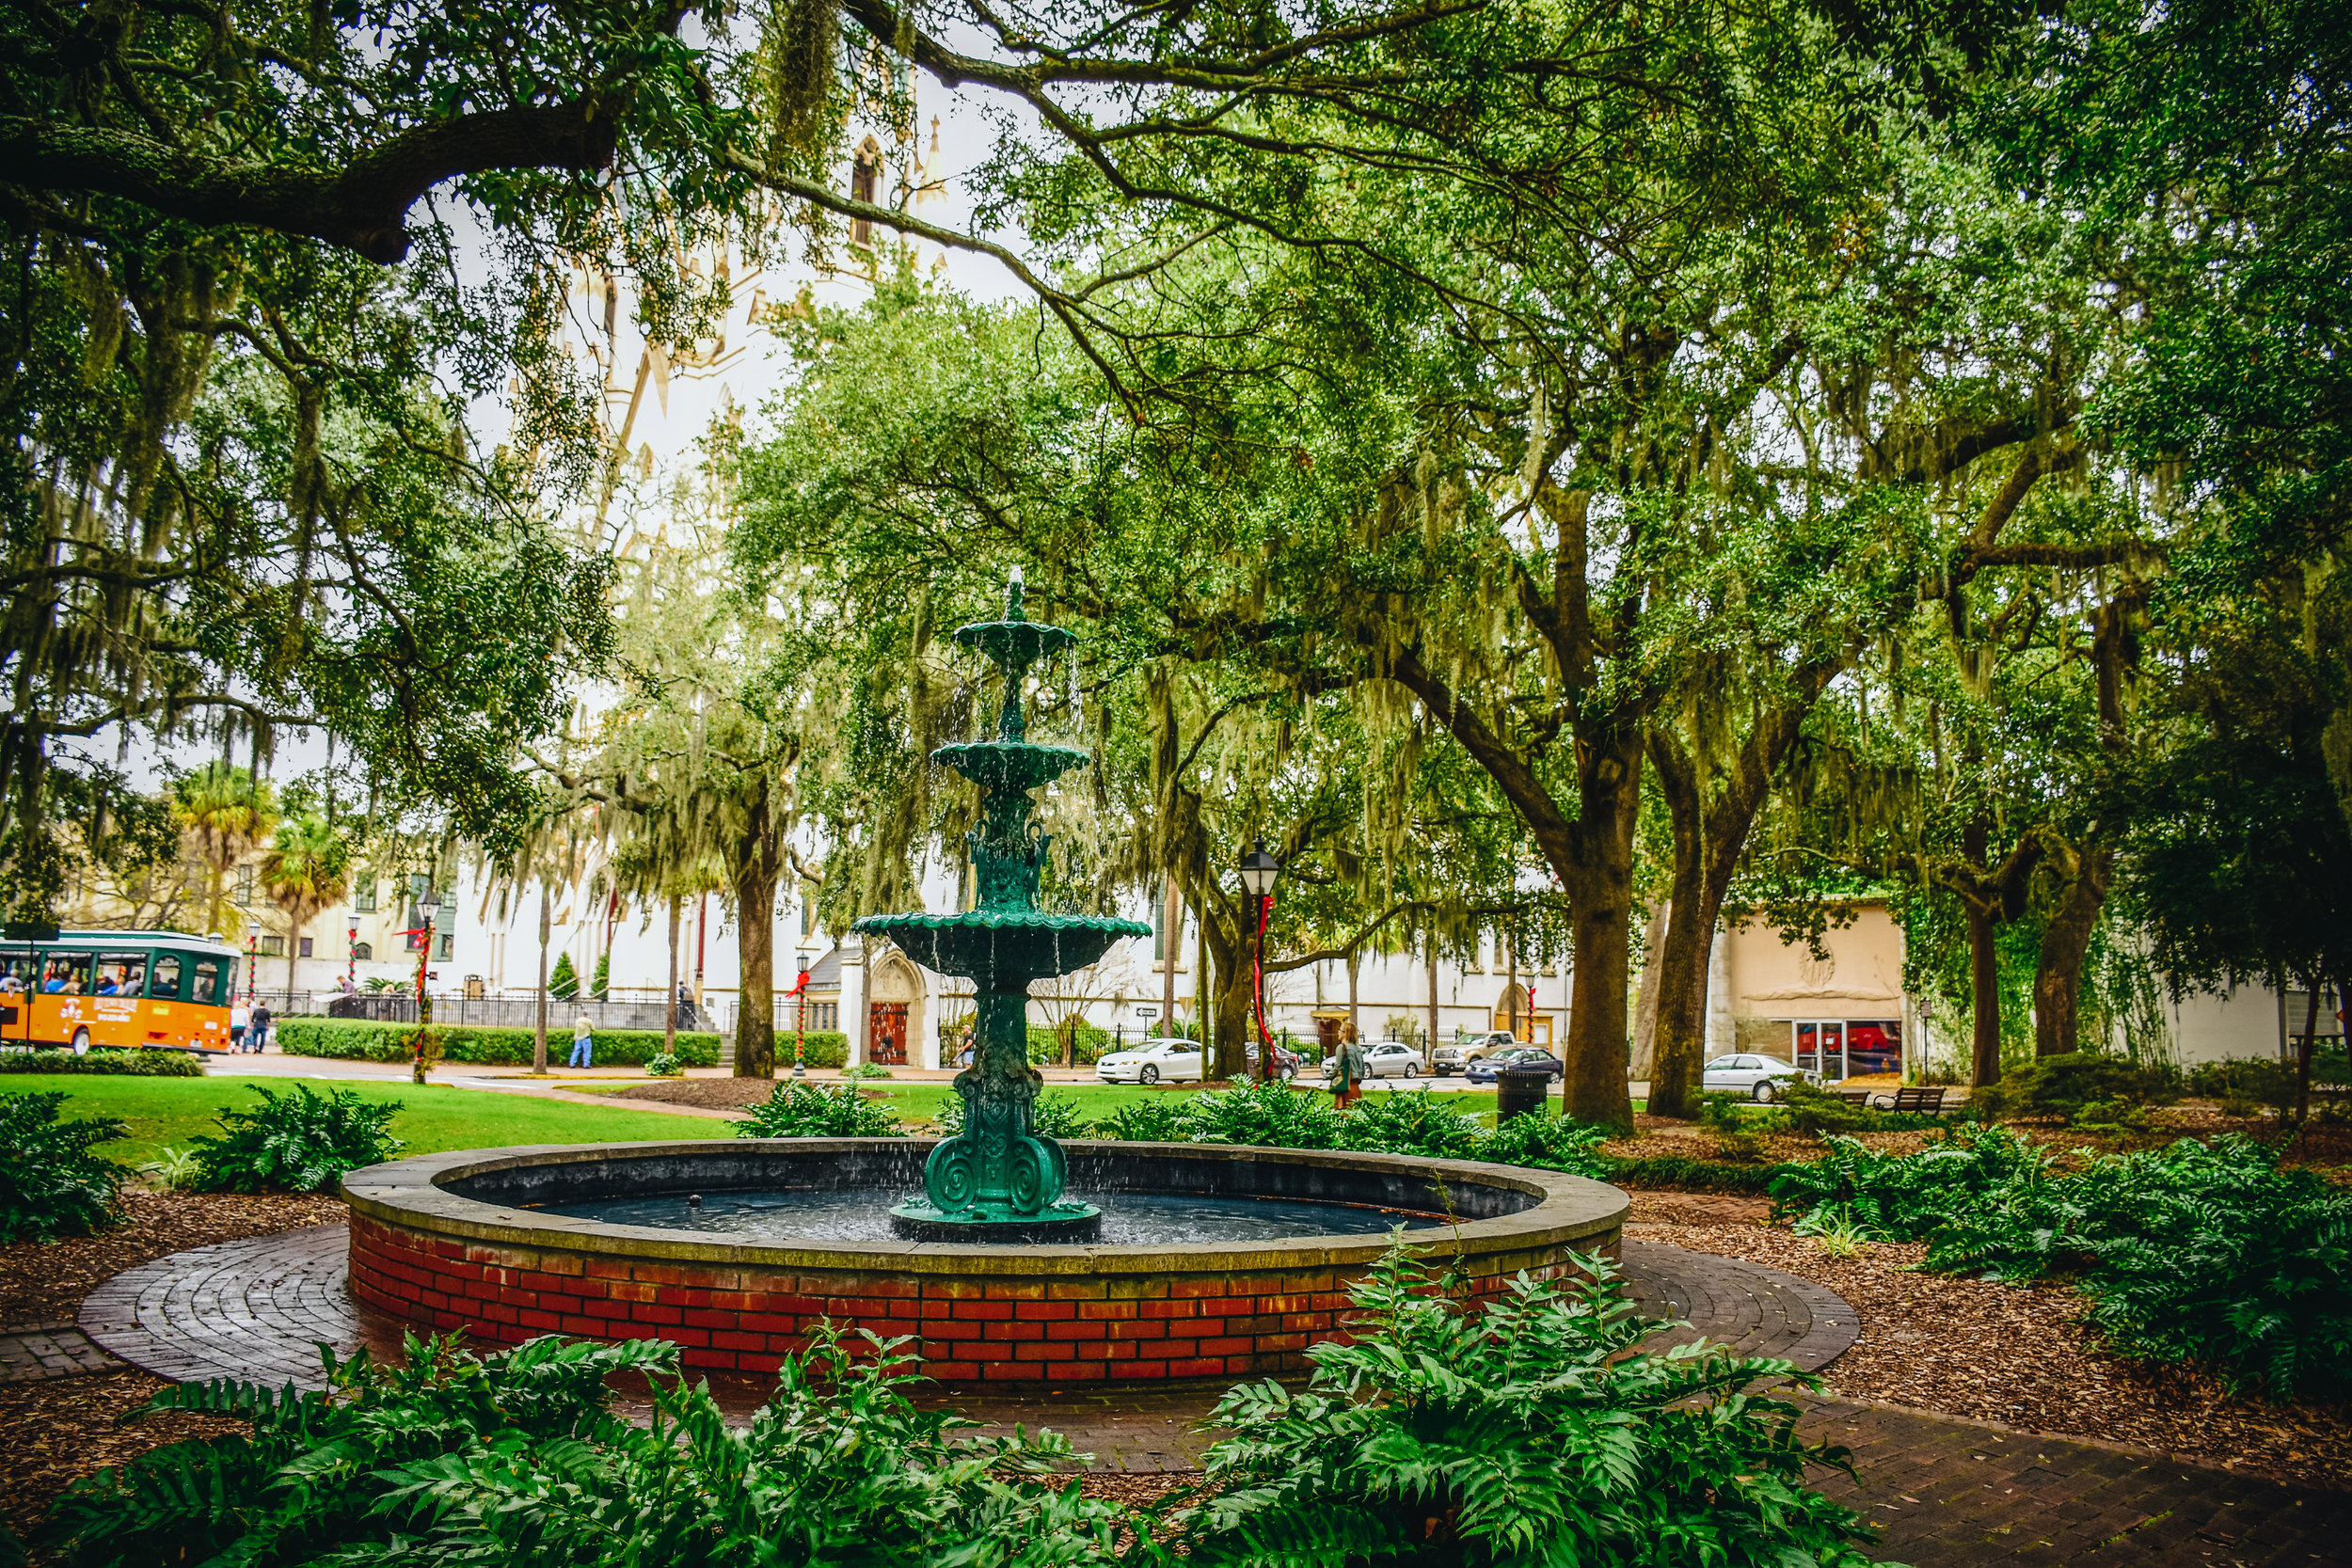 Savannah's beautiful parks with Spanish moss everywhere.